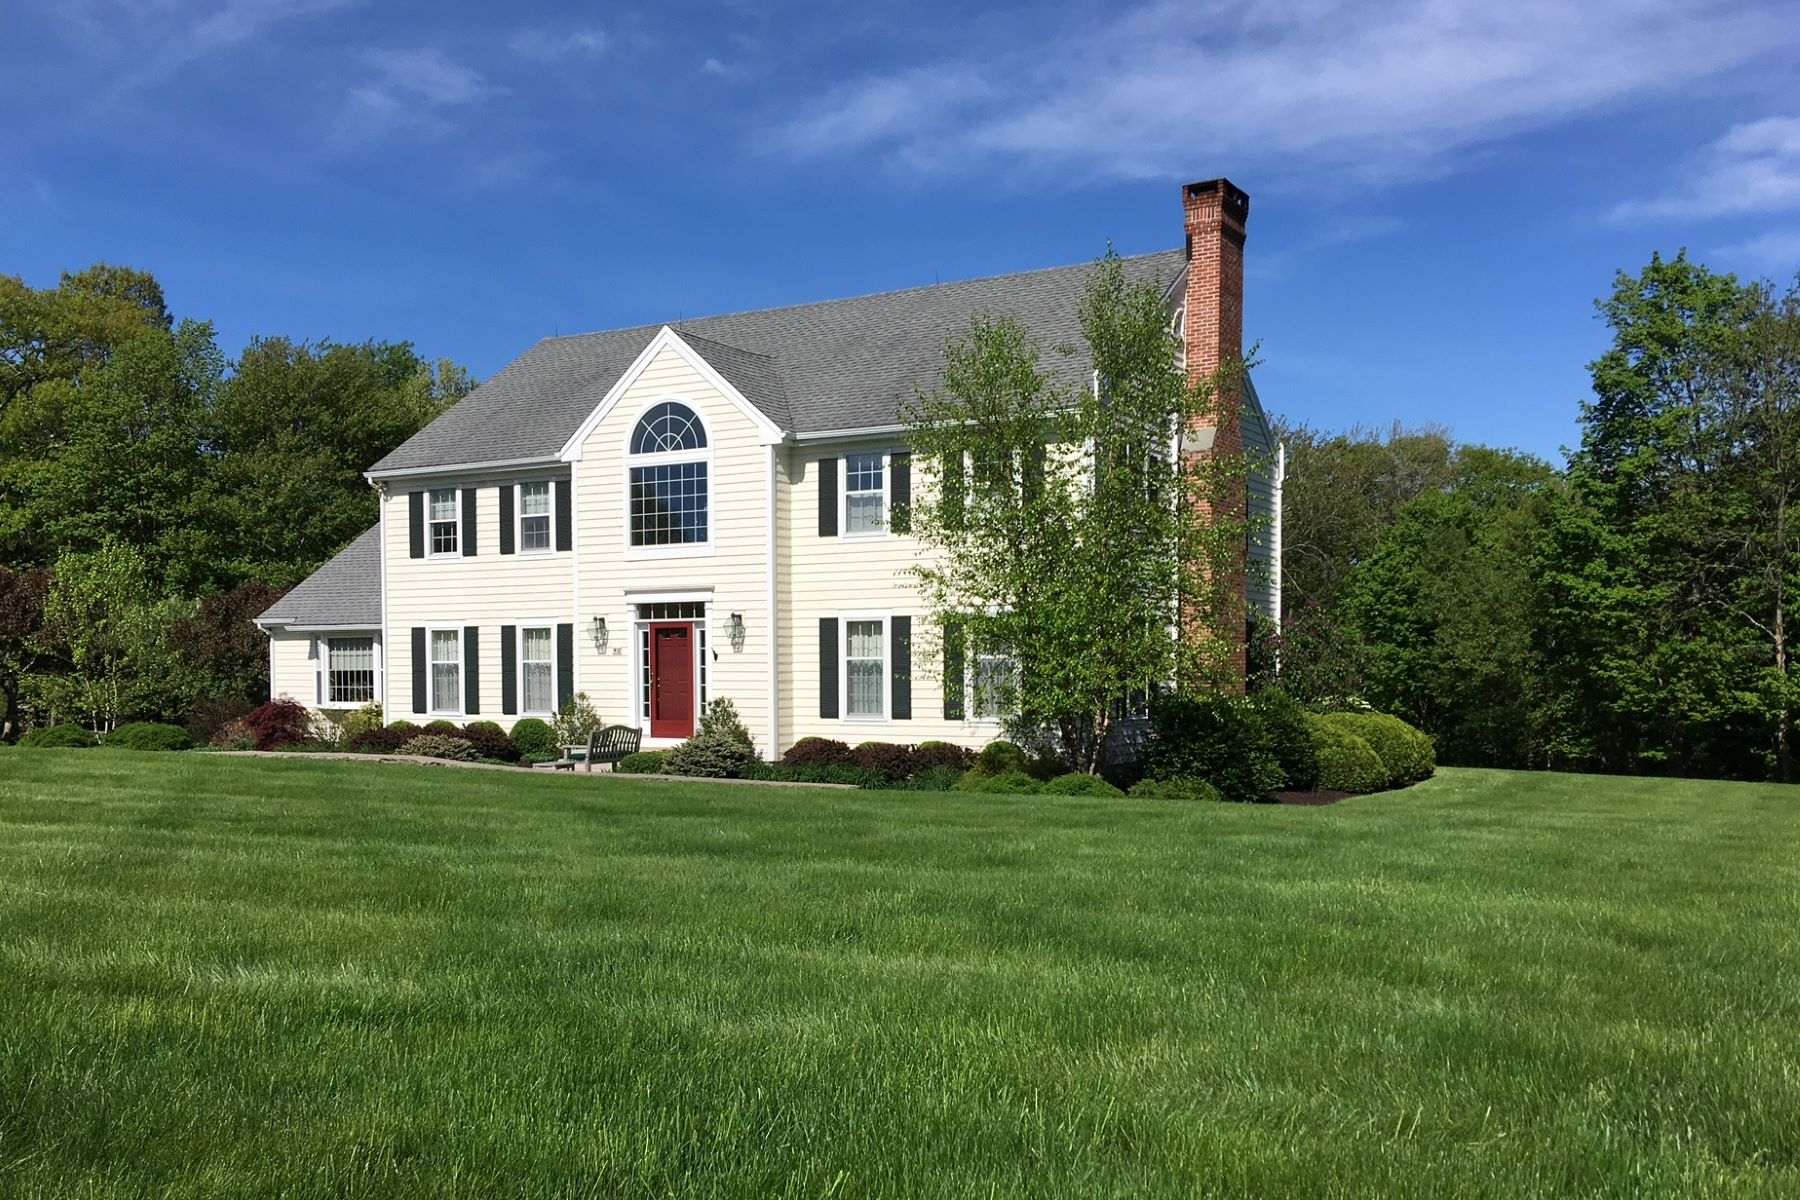 Single Family Home for Sale at Traditional but Modern 42 Old Farm Road Litchfield, Connecticut 06759 United States